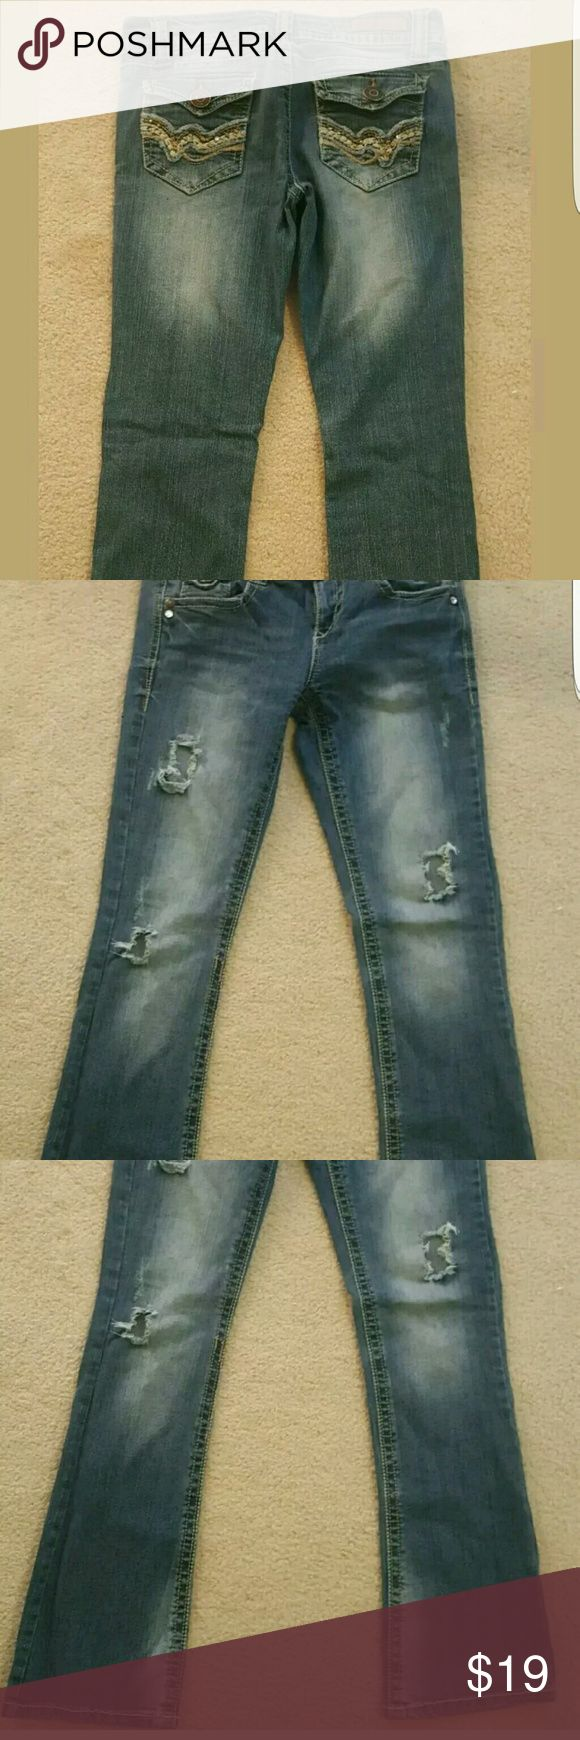 Wallflower distressed Jeans💣lowest Low rise,boot cut,distressed size 7R Jeans. Excellent condition. Stretchy,comfy,hardly worn. I just cant pull off low cut anymore. Faded wash. Wallflower Jeans Boot Cut